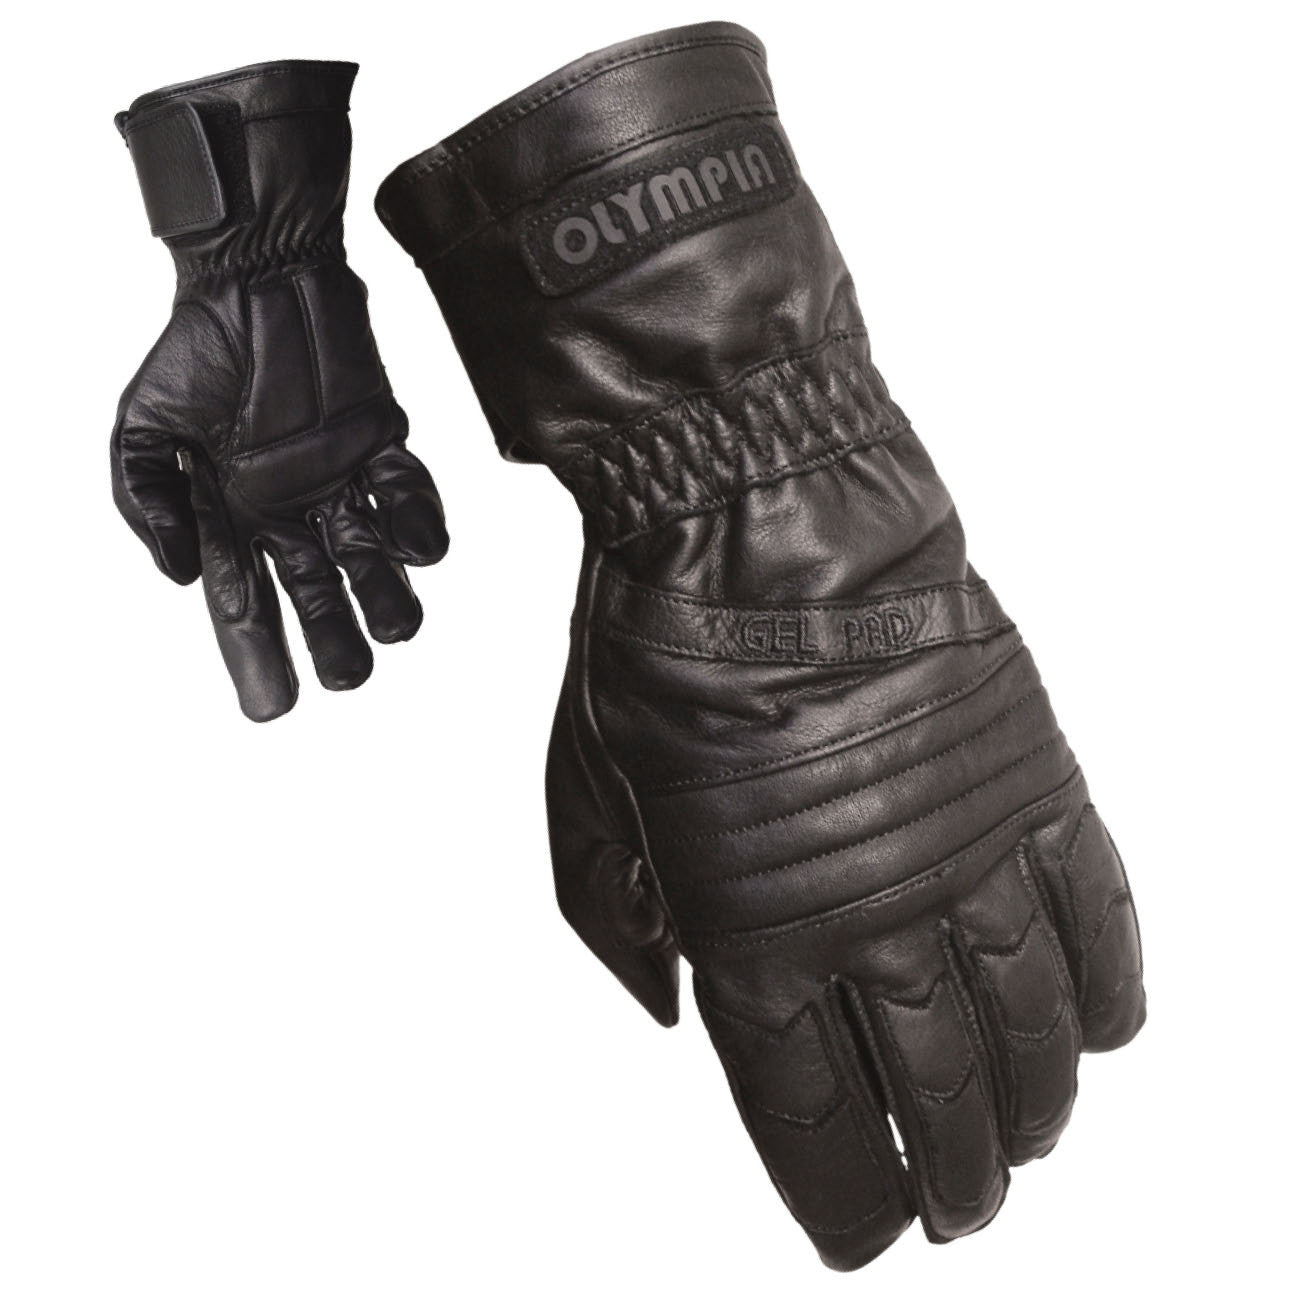 Buy leather gauntlet gloves - Olympia Gloves 410 Gel Sport Gloves Product Image